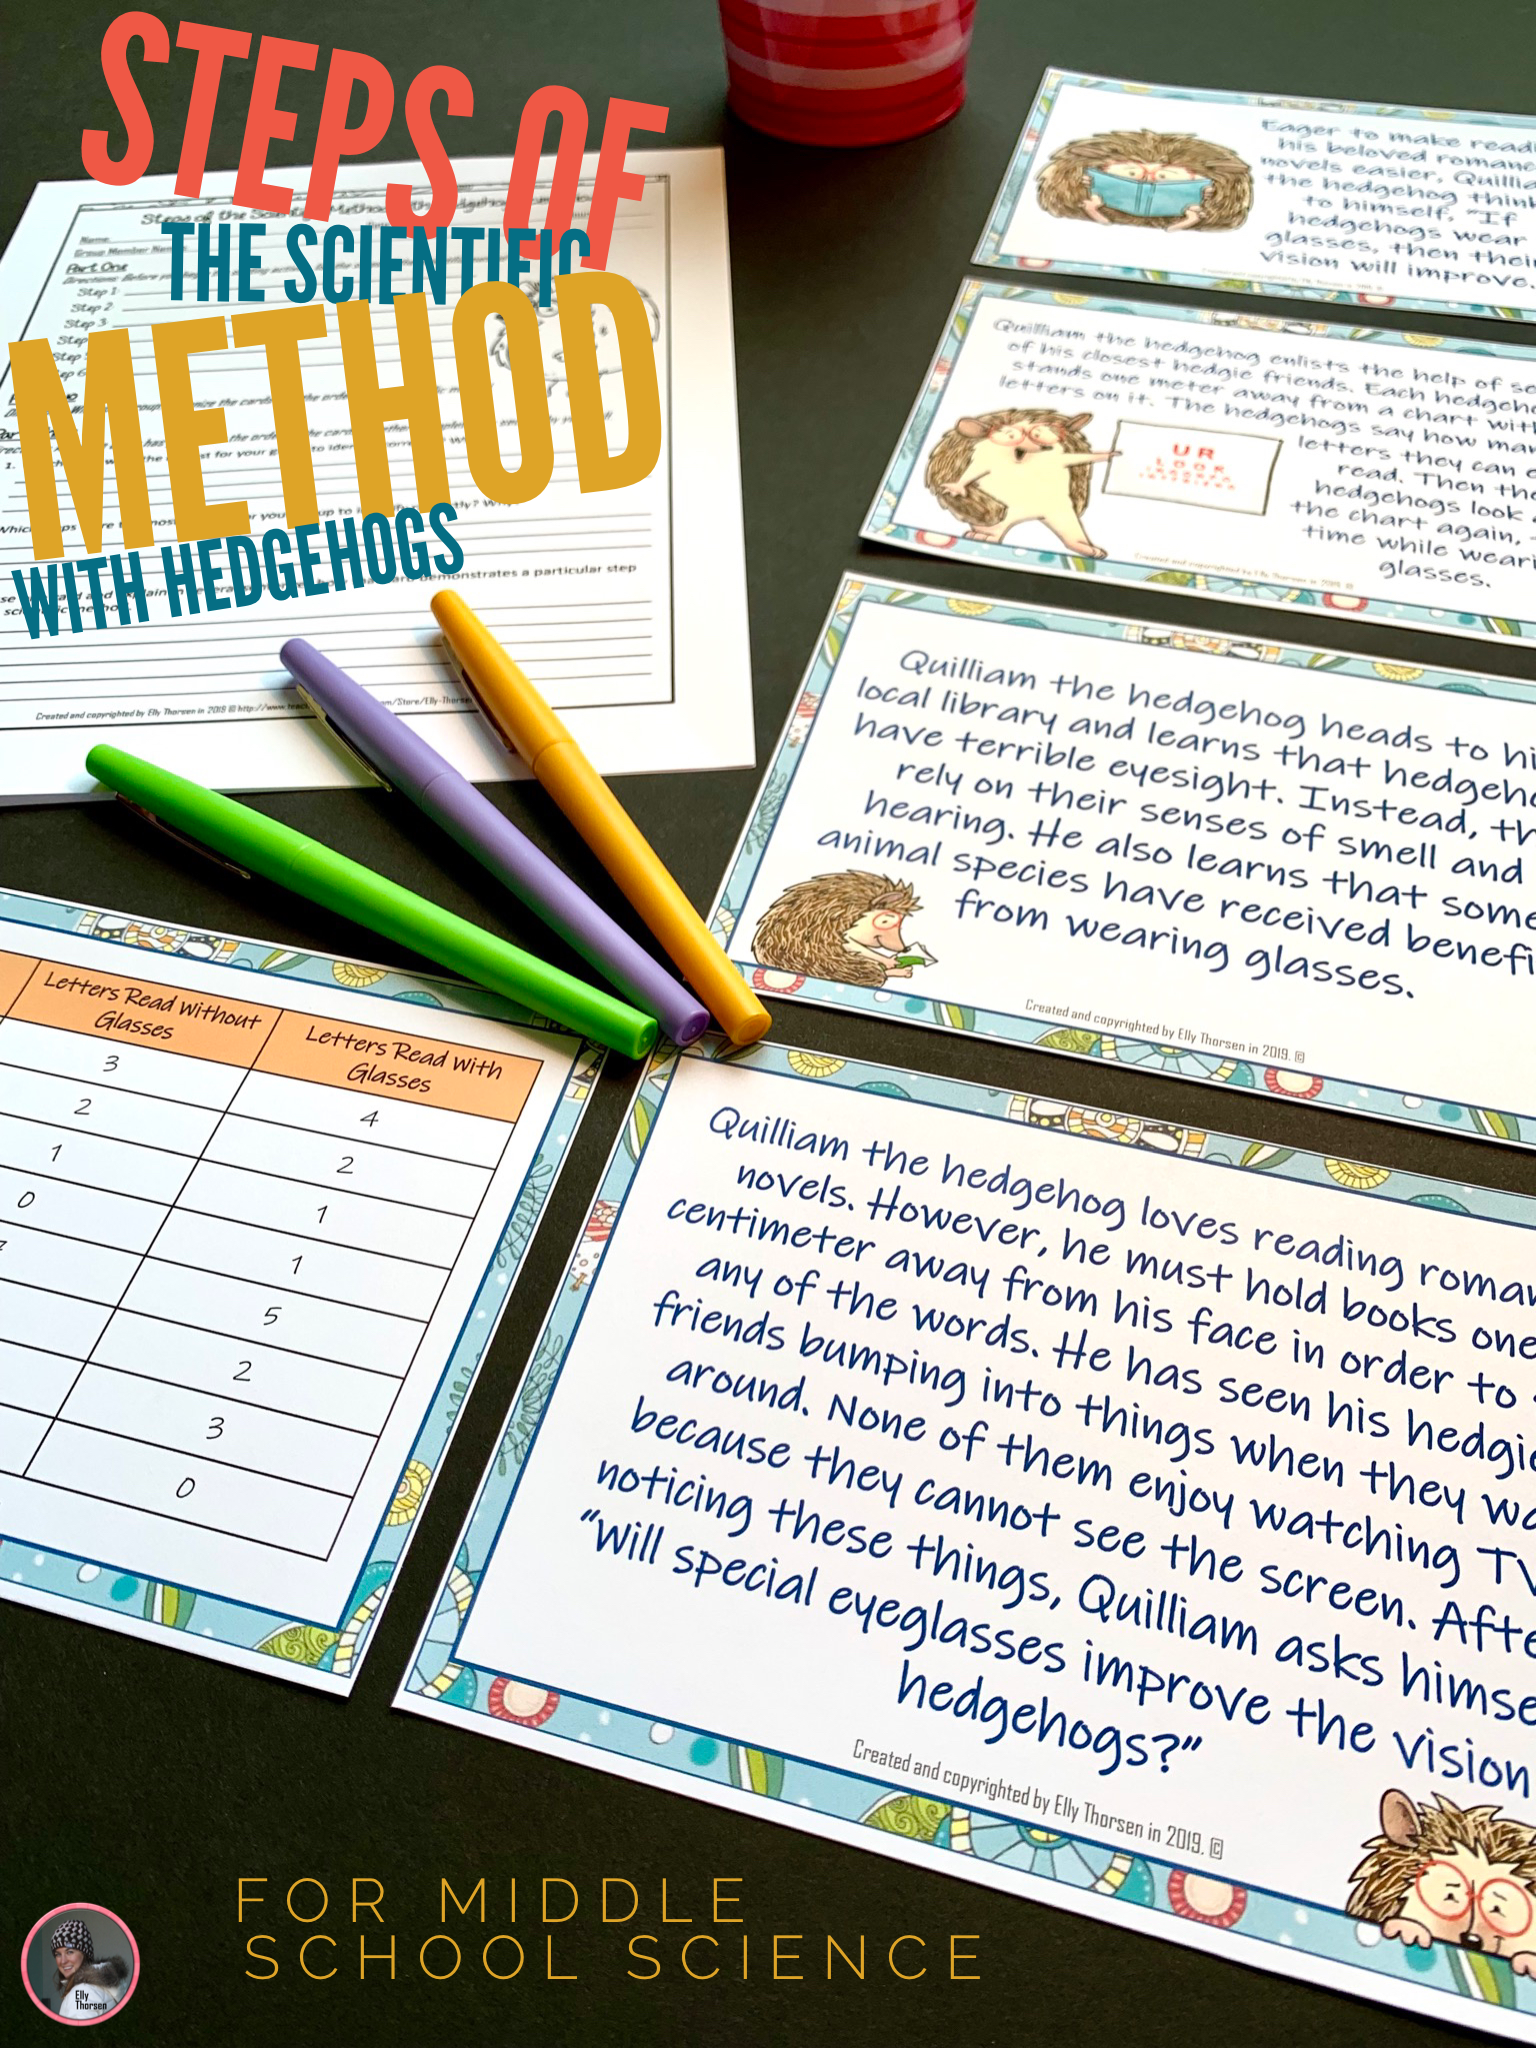 Steps Of The Scientific Method Activity With Hedgehogs In